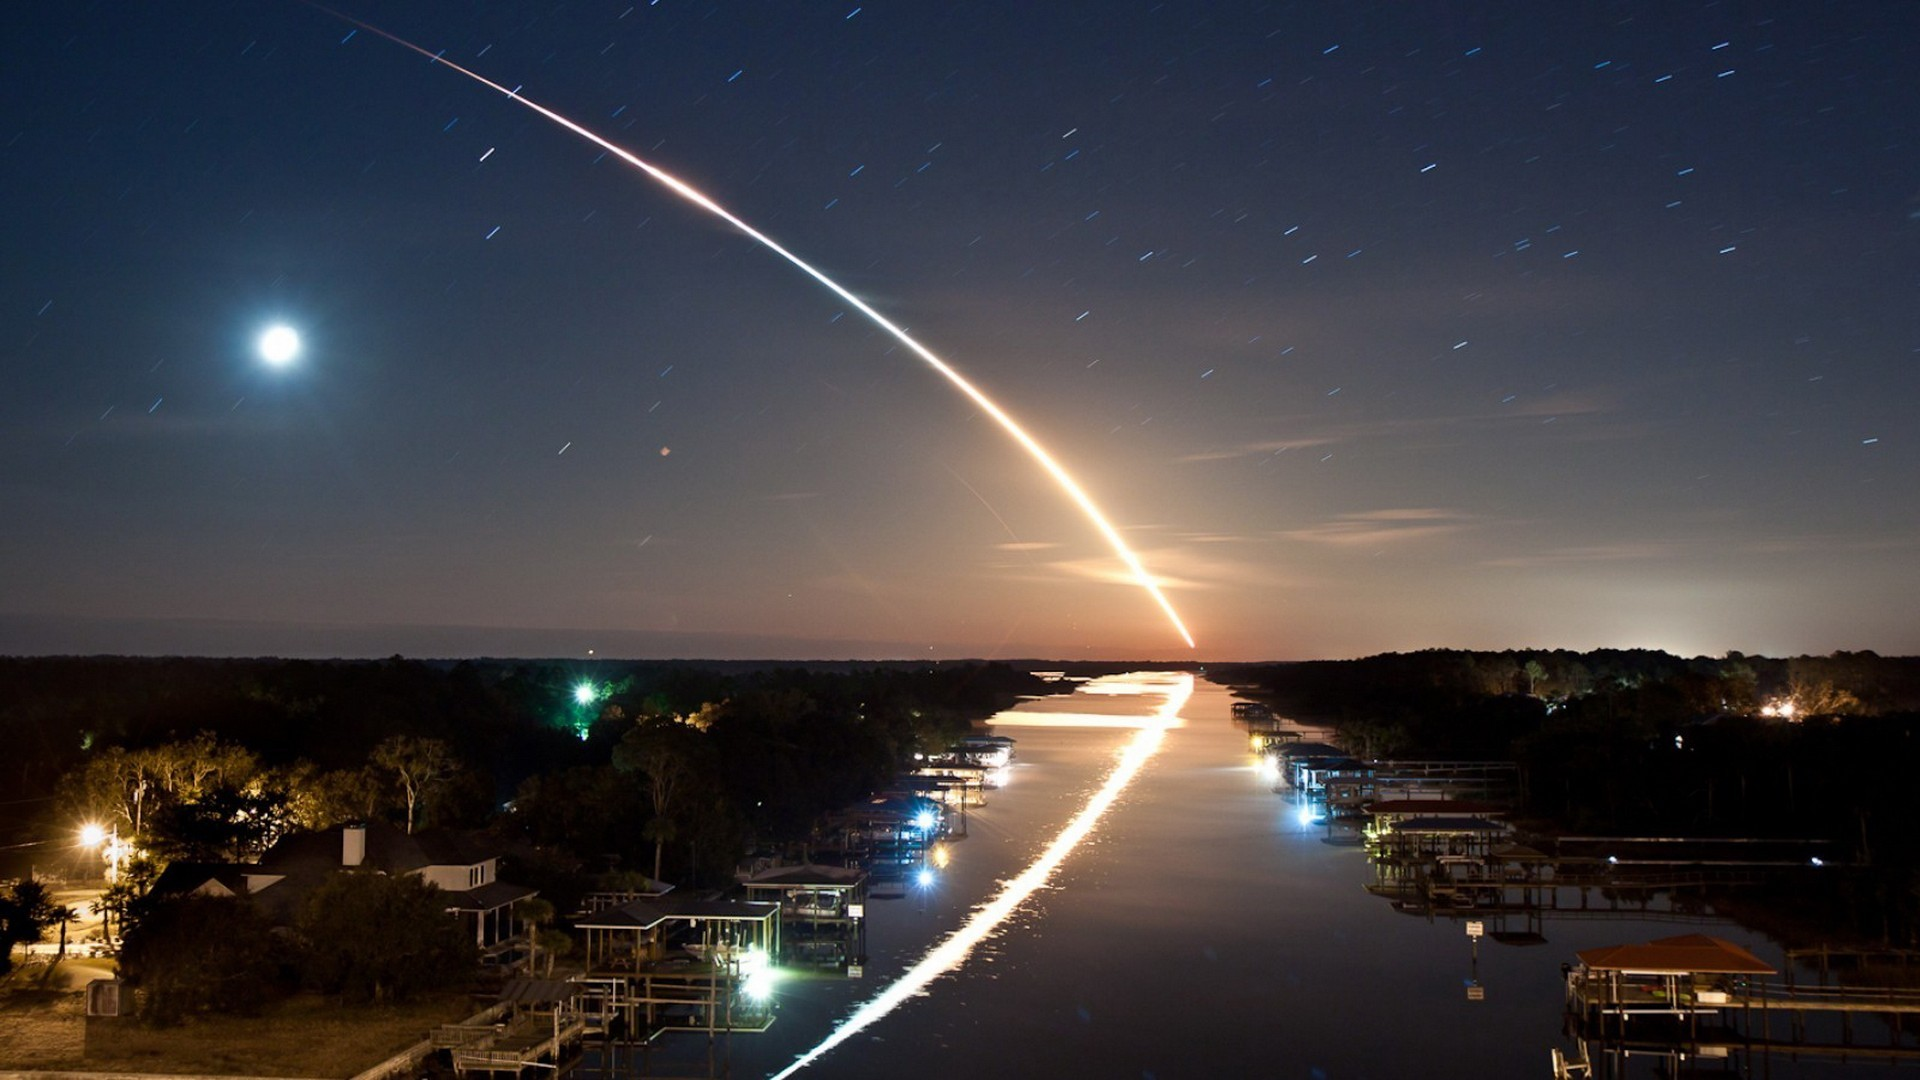 #river, #landscape, #shooting Stars, #digital Art, - Space Shuttle Launch , HD Wallpaper & Backgrounds